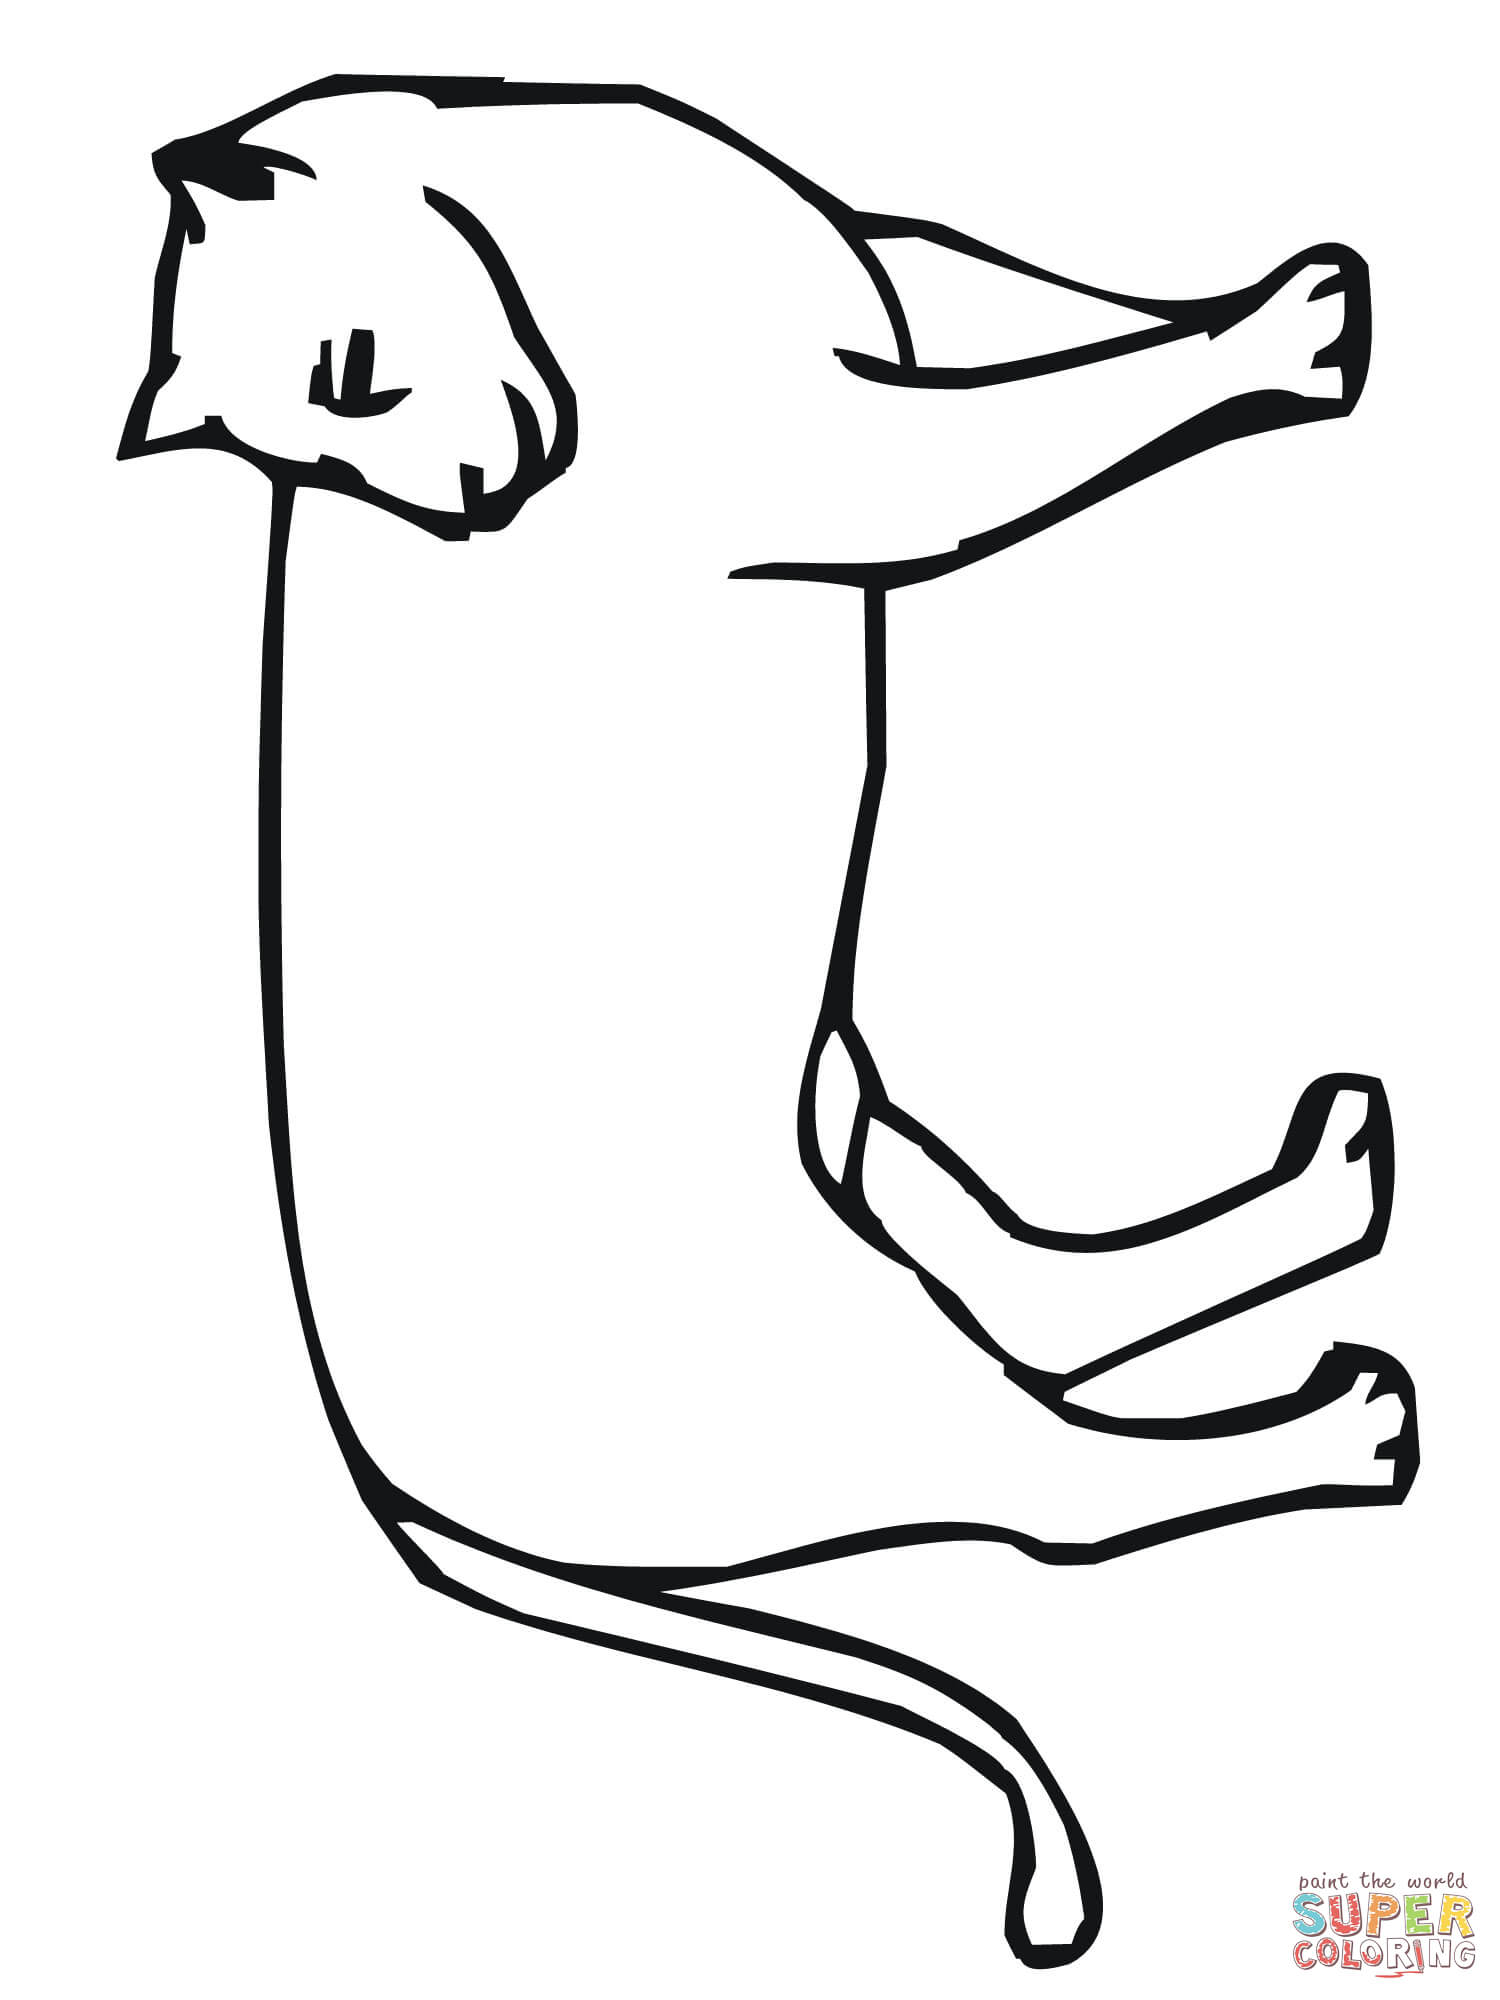 Cougar paw color page clipart best for Cougar coloring pages